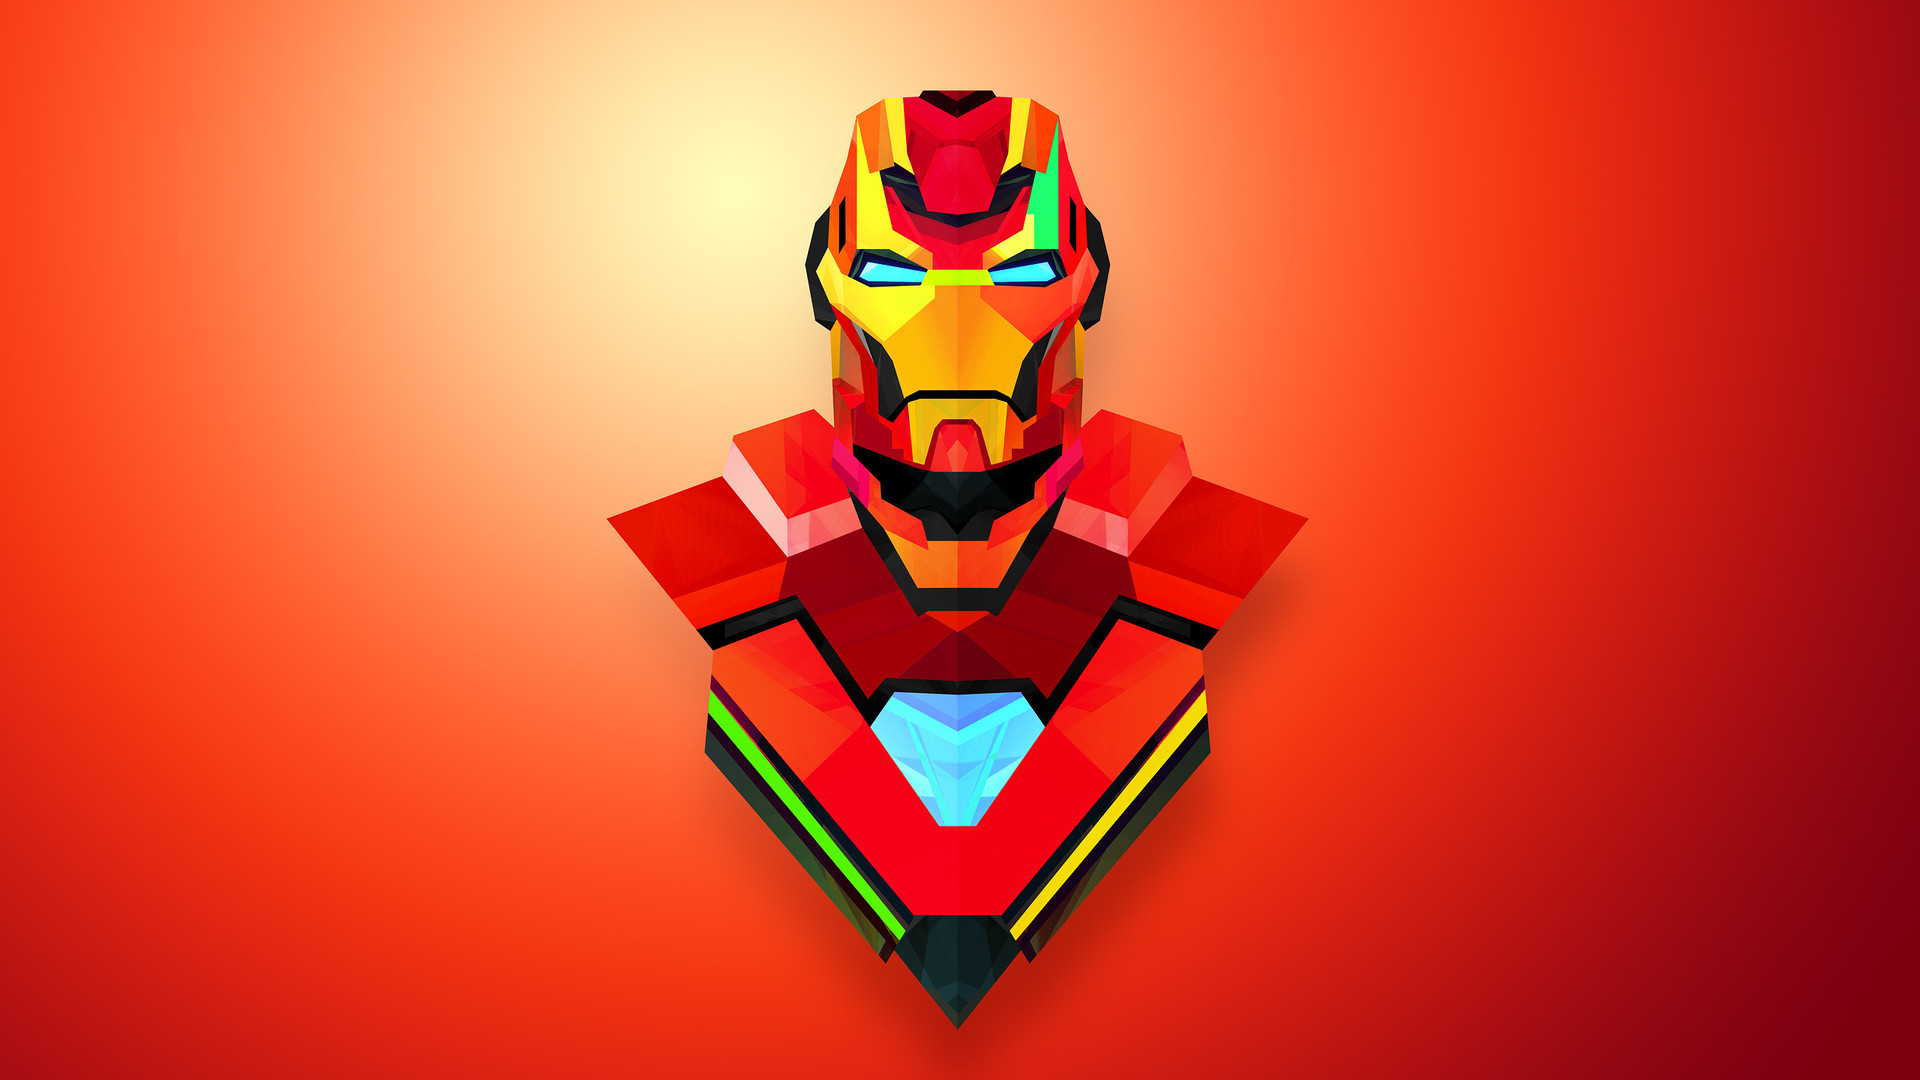 4K Gaming Wallpaper Red Iron Man Art